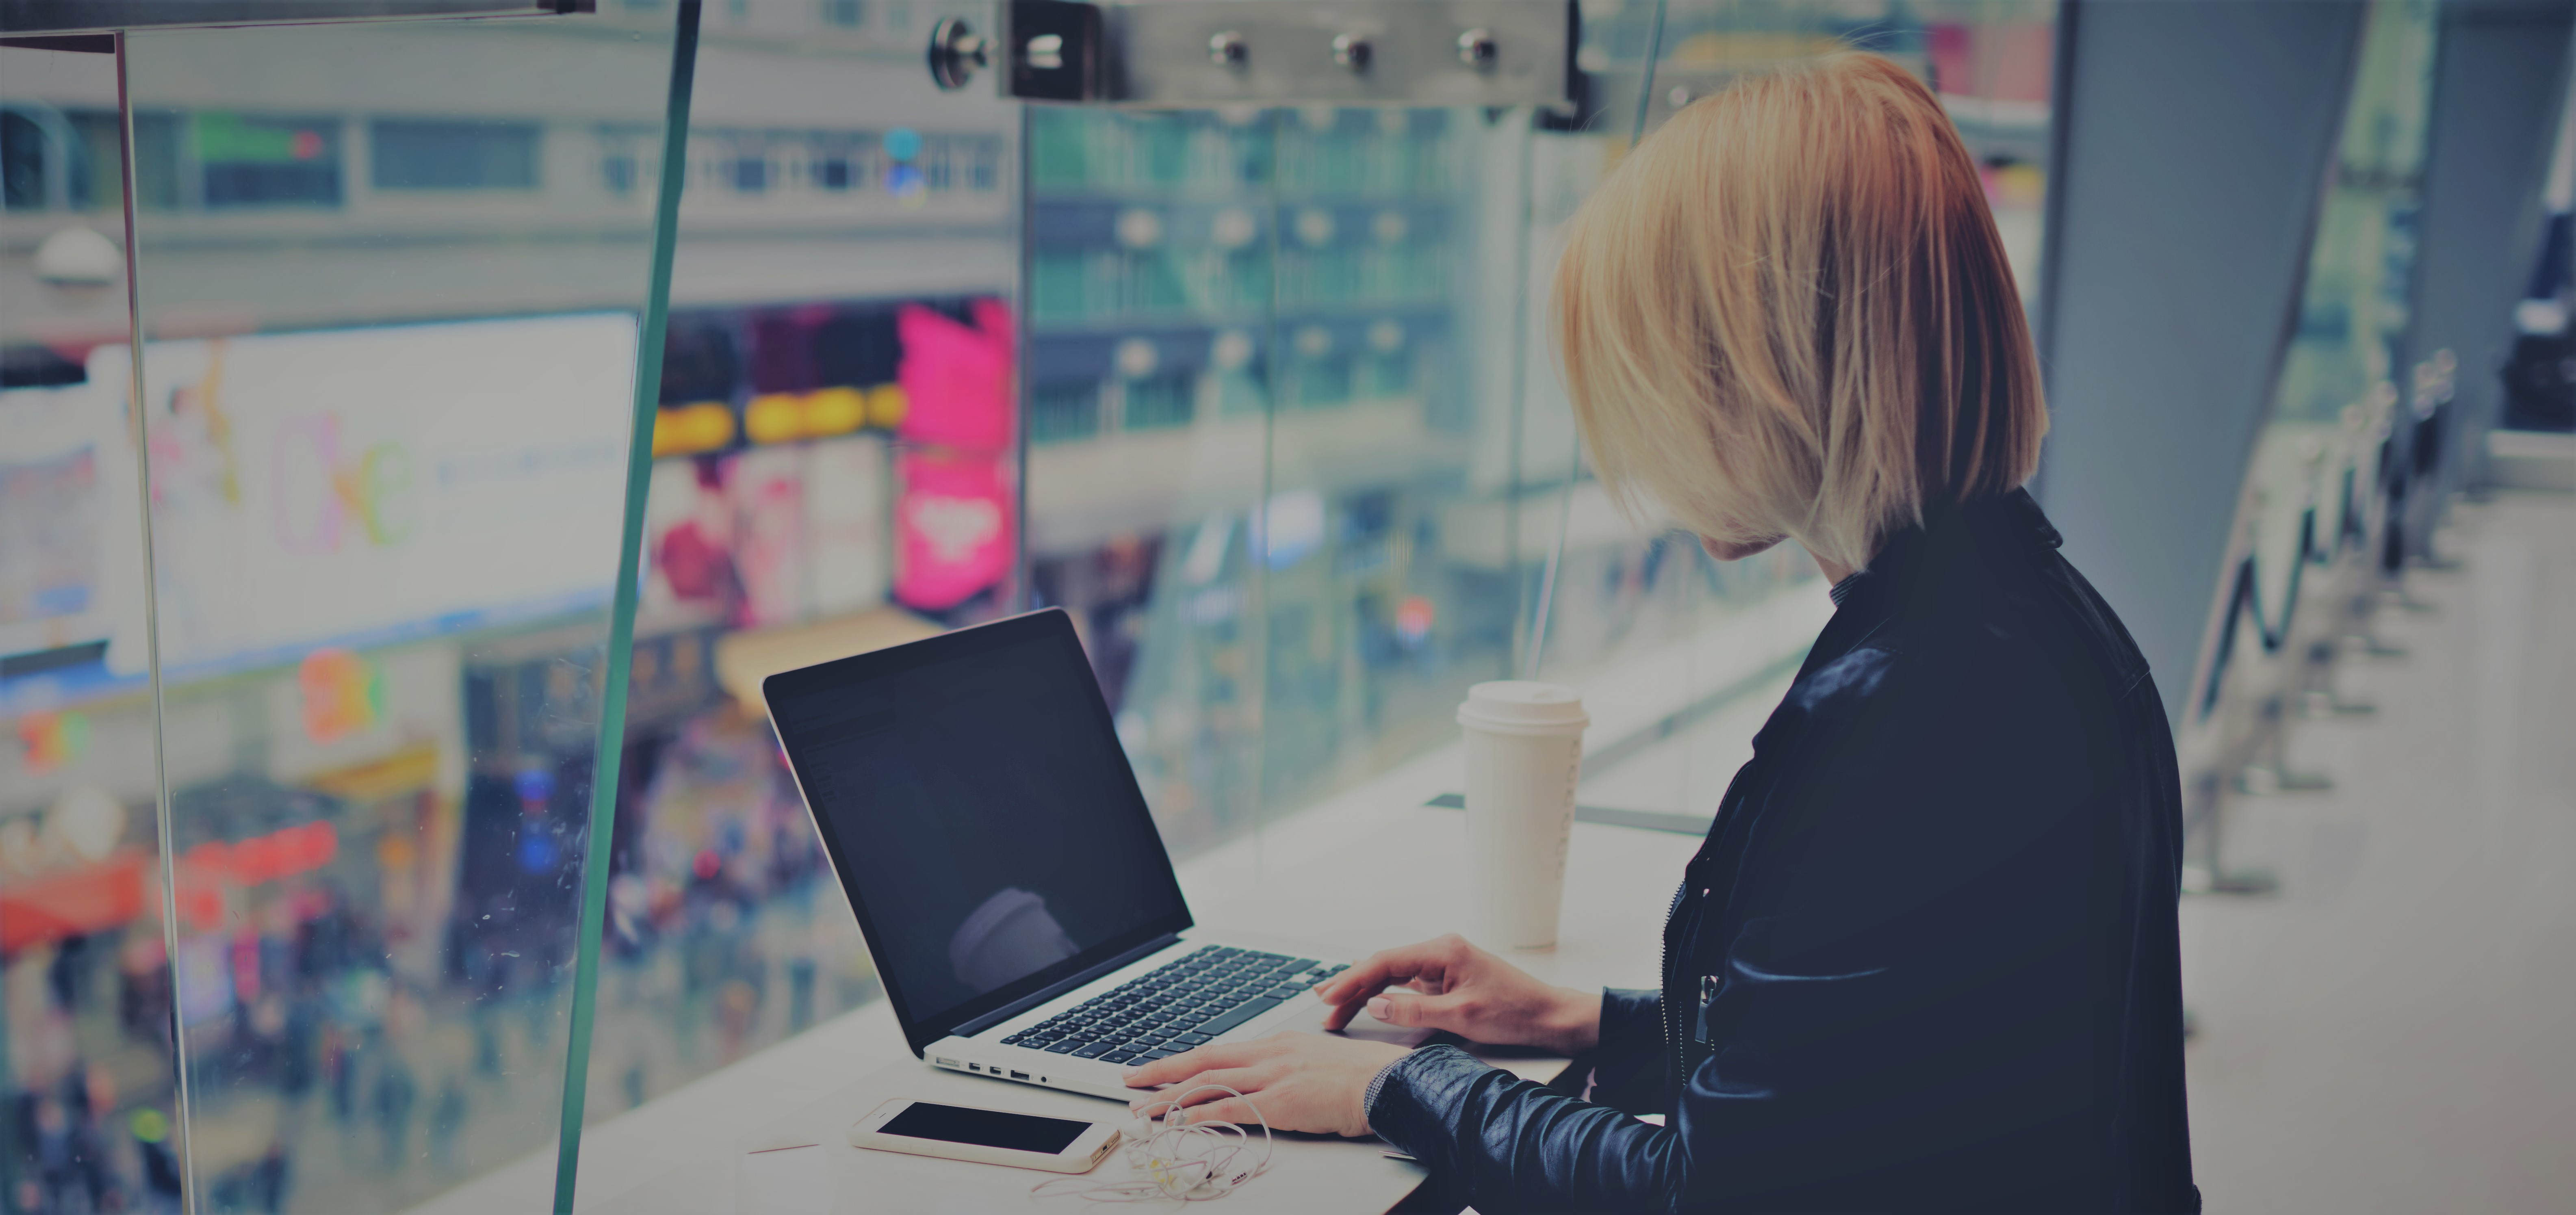 woman on laptop looking out windows